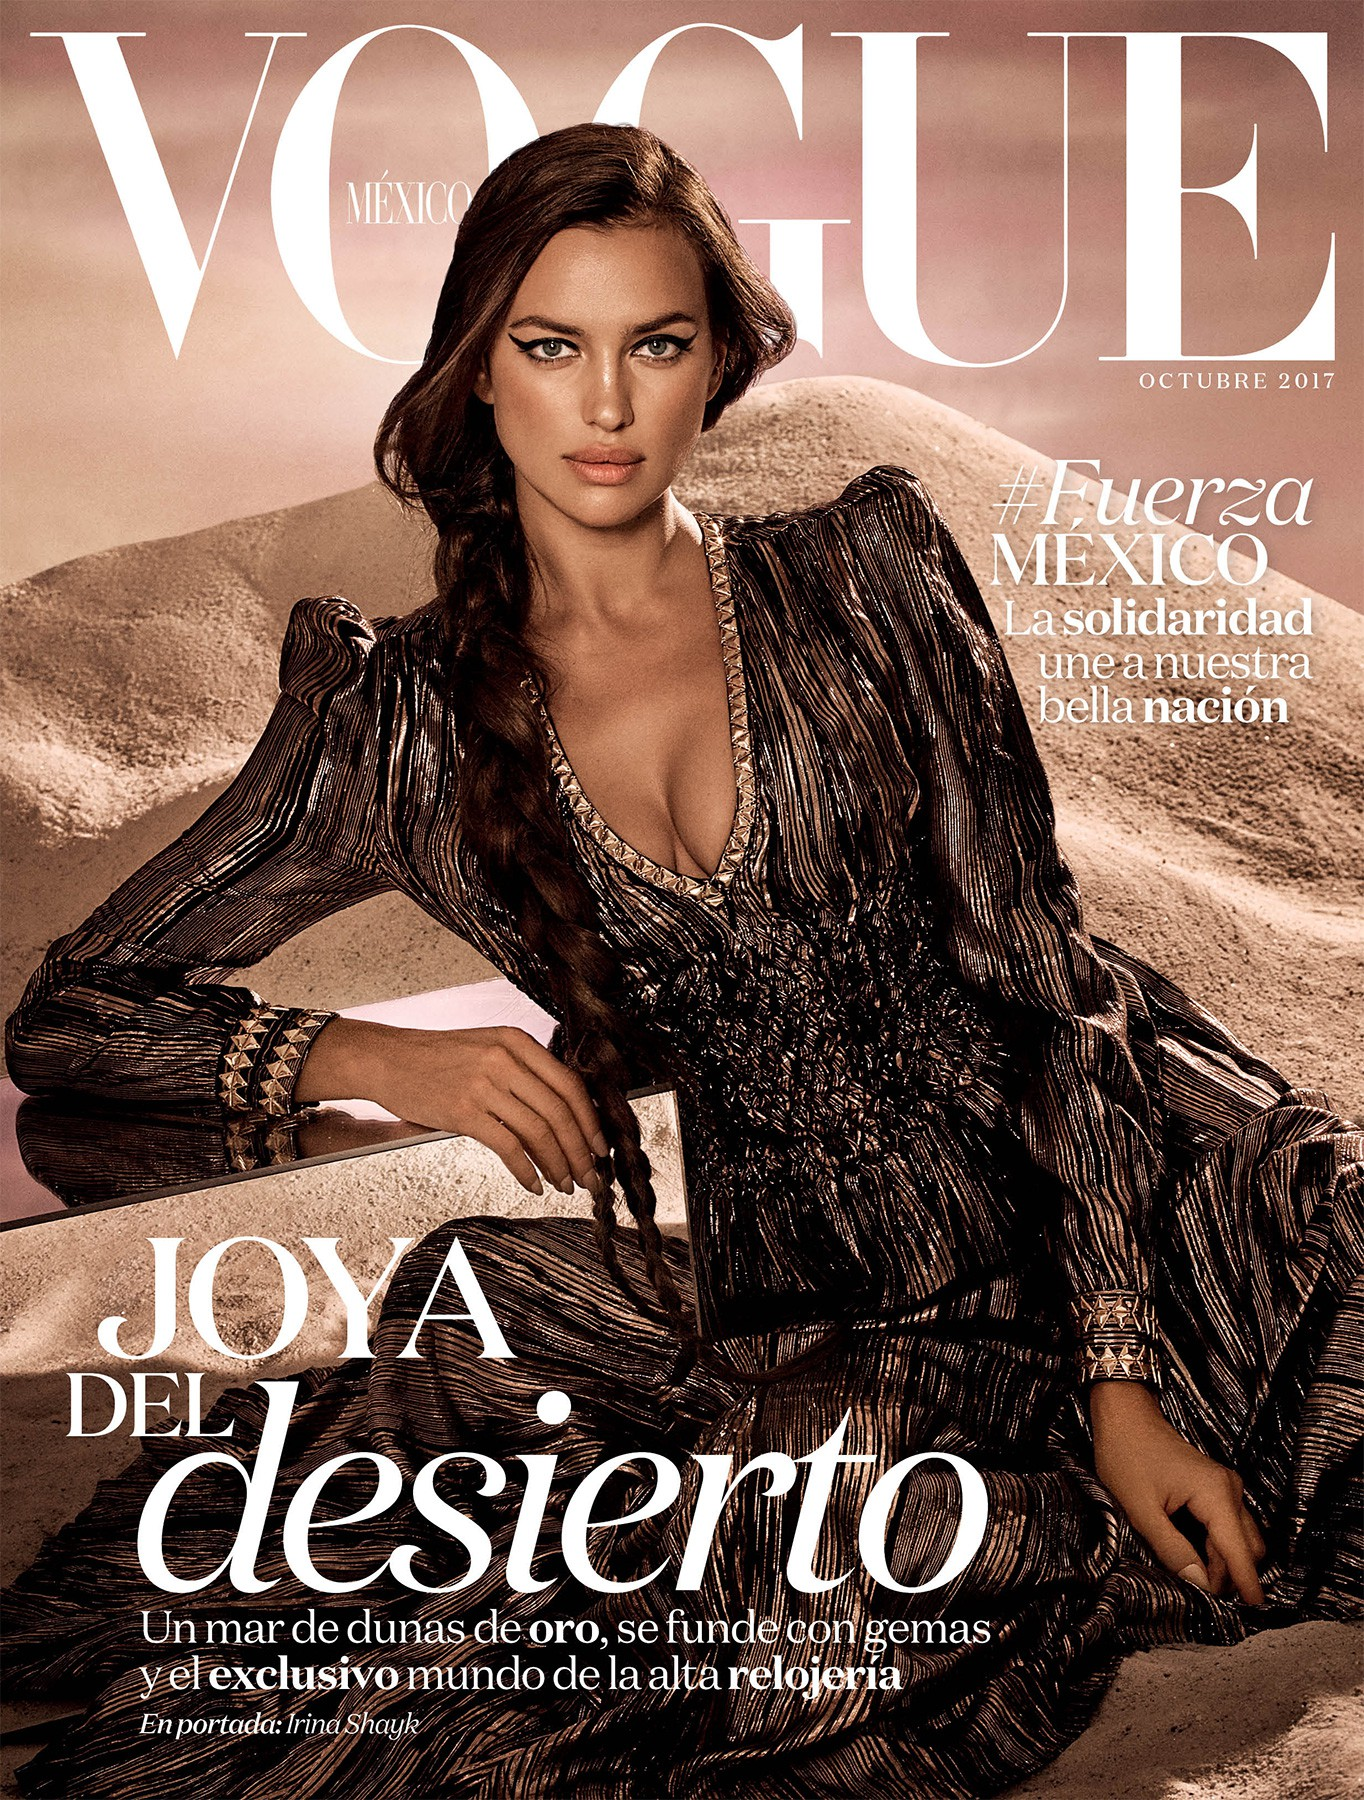 irina-shayk-by-jason-kibbler-for-vogue-mexico-october-20171-1558257931455388823355.jpg